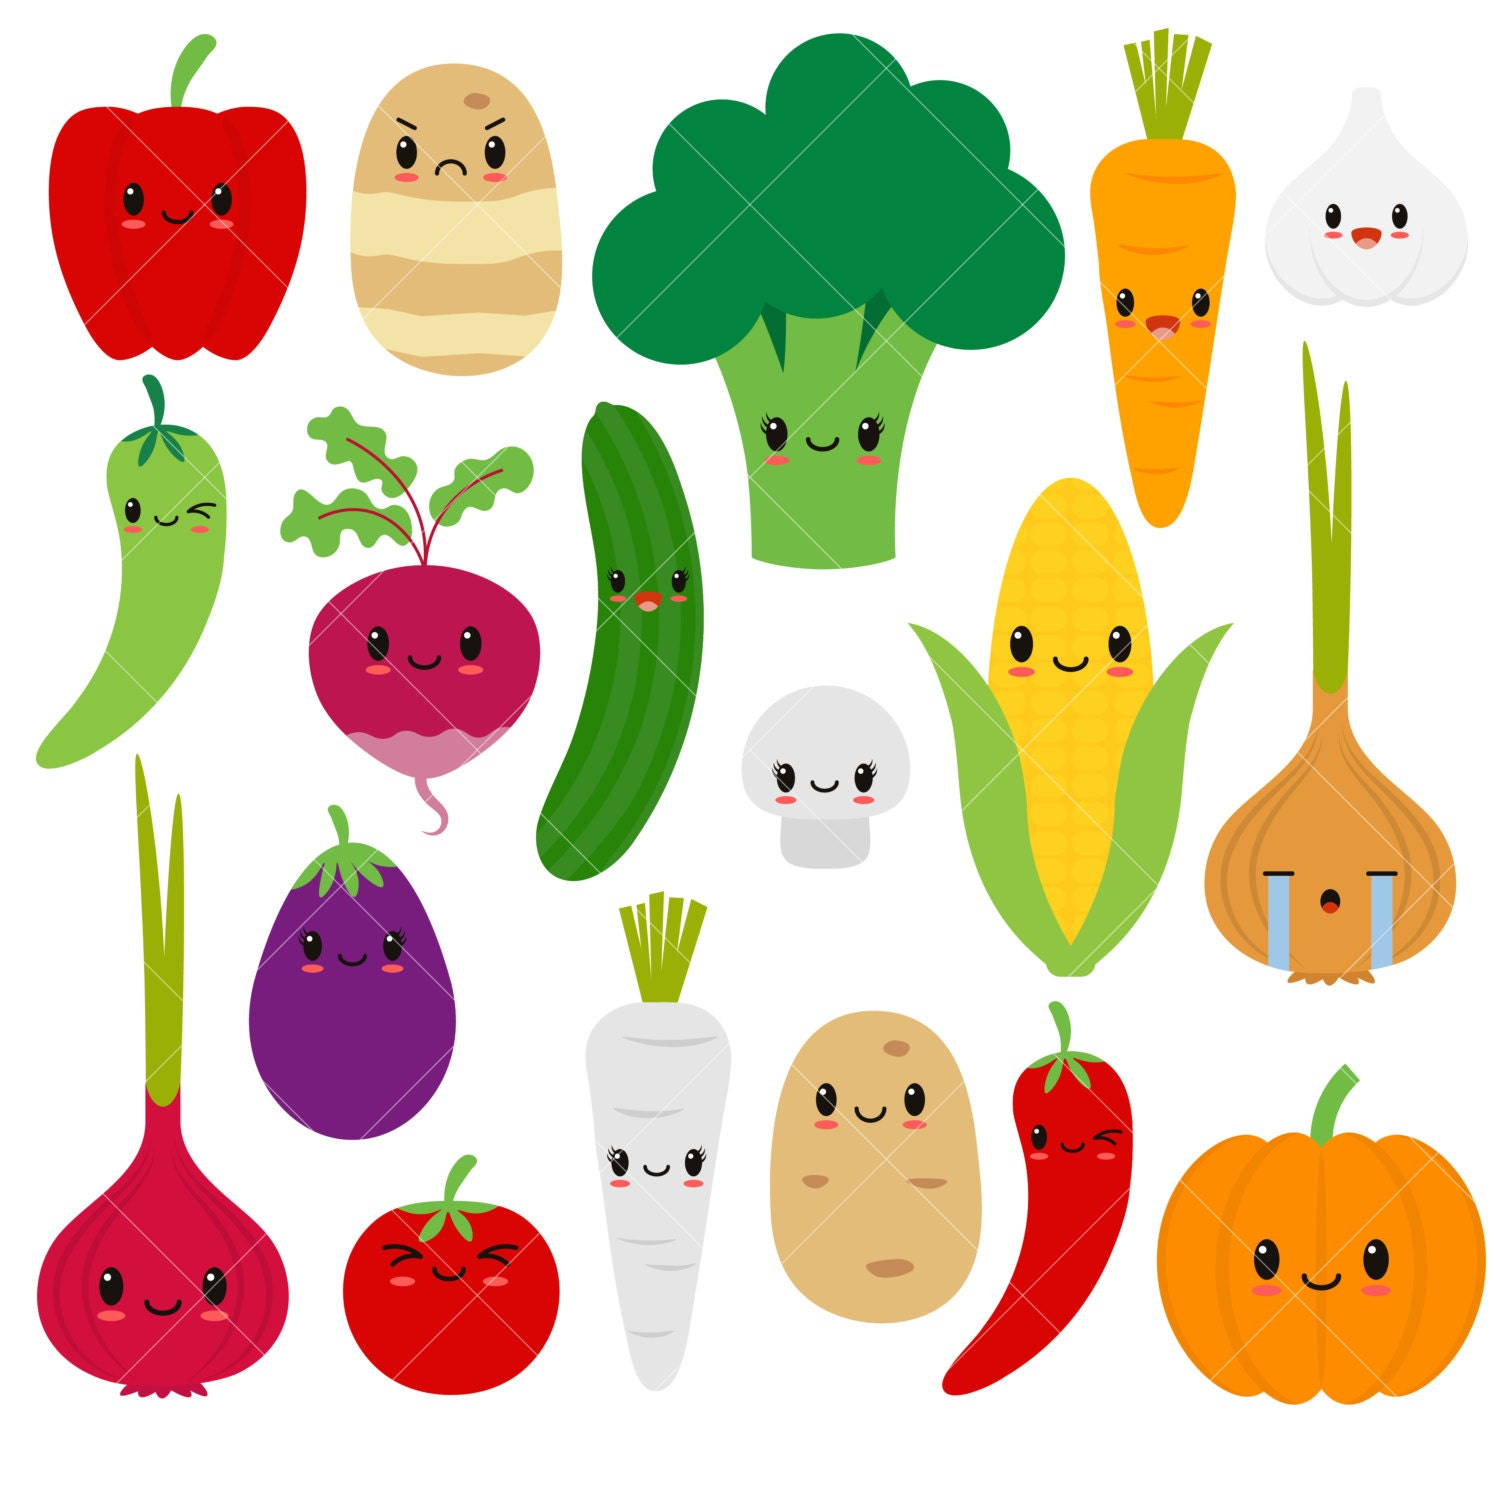 Kawaii Vegetables / Cute Vegetable Clipart / Happy Veggies